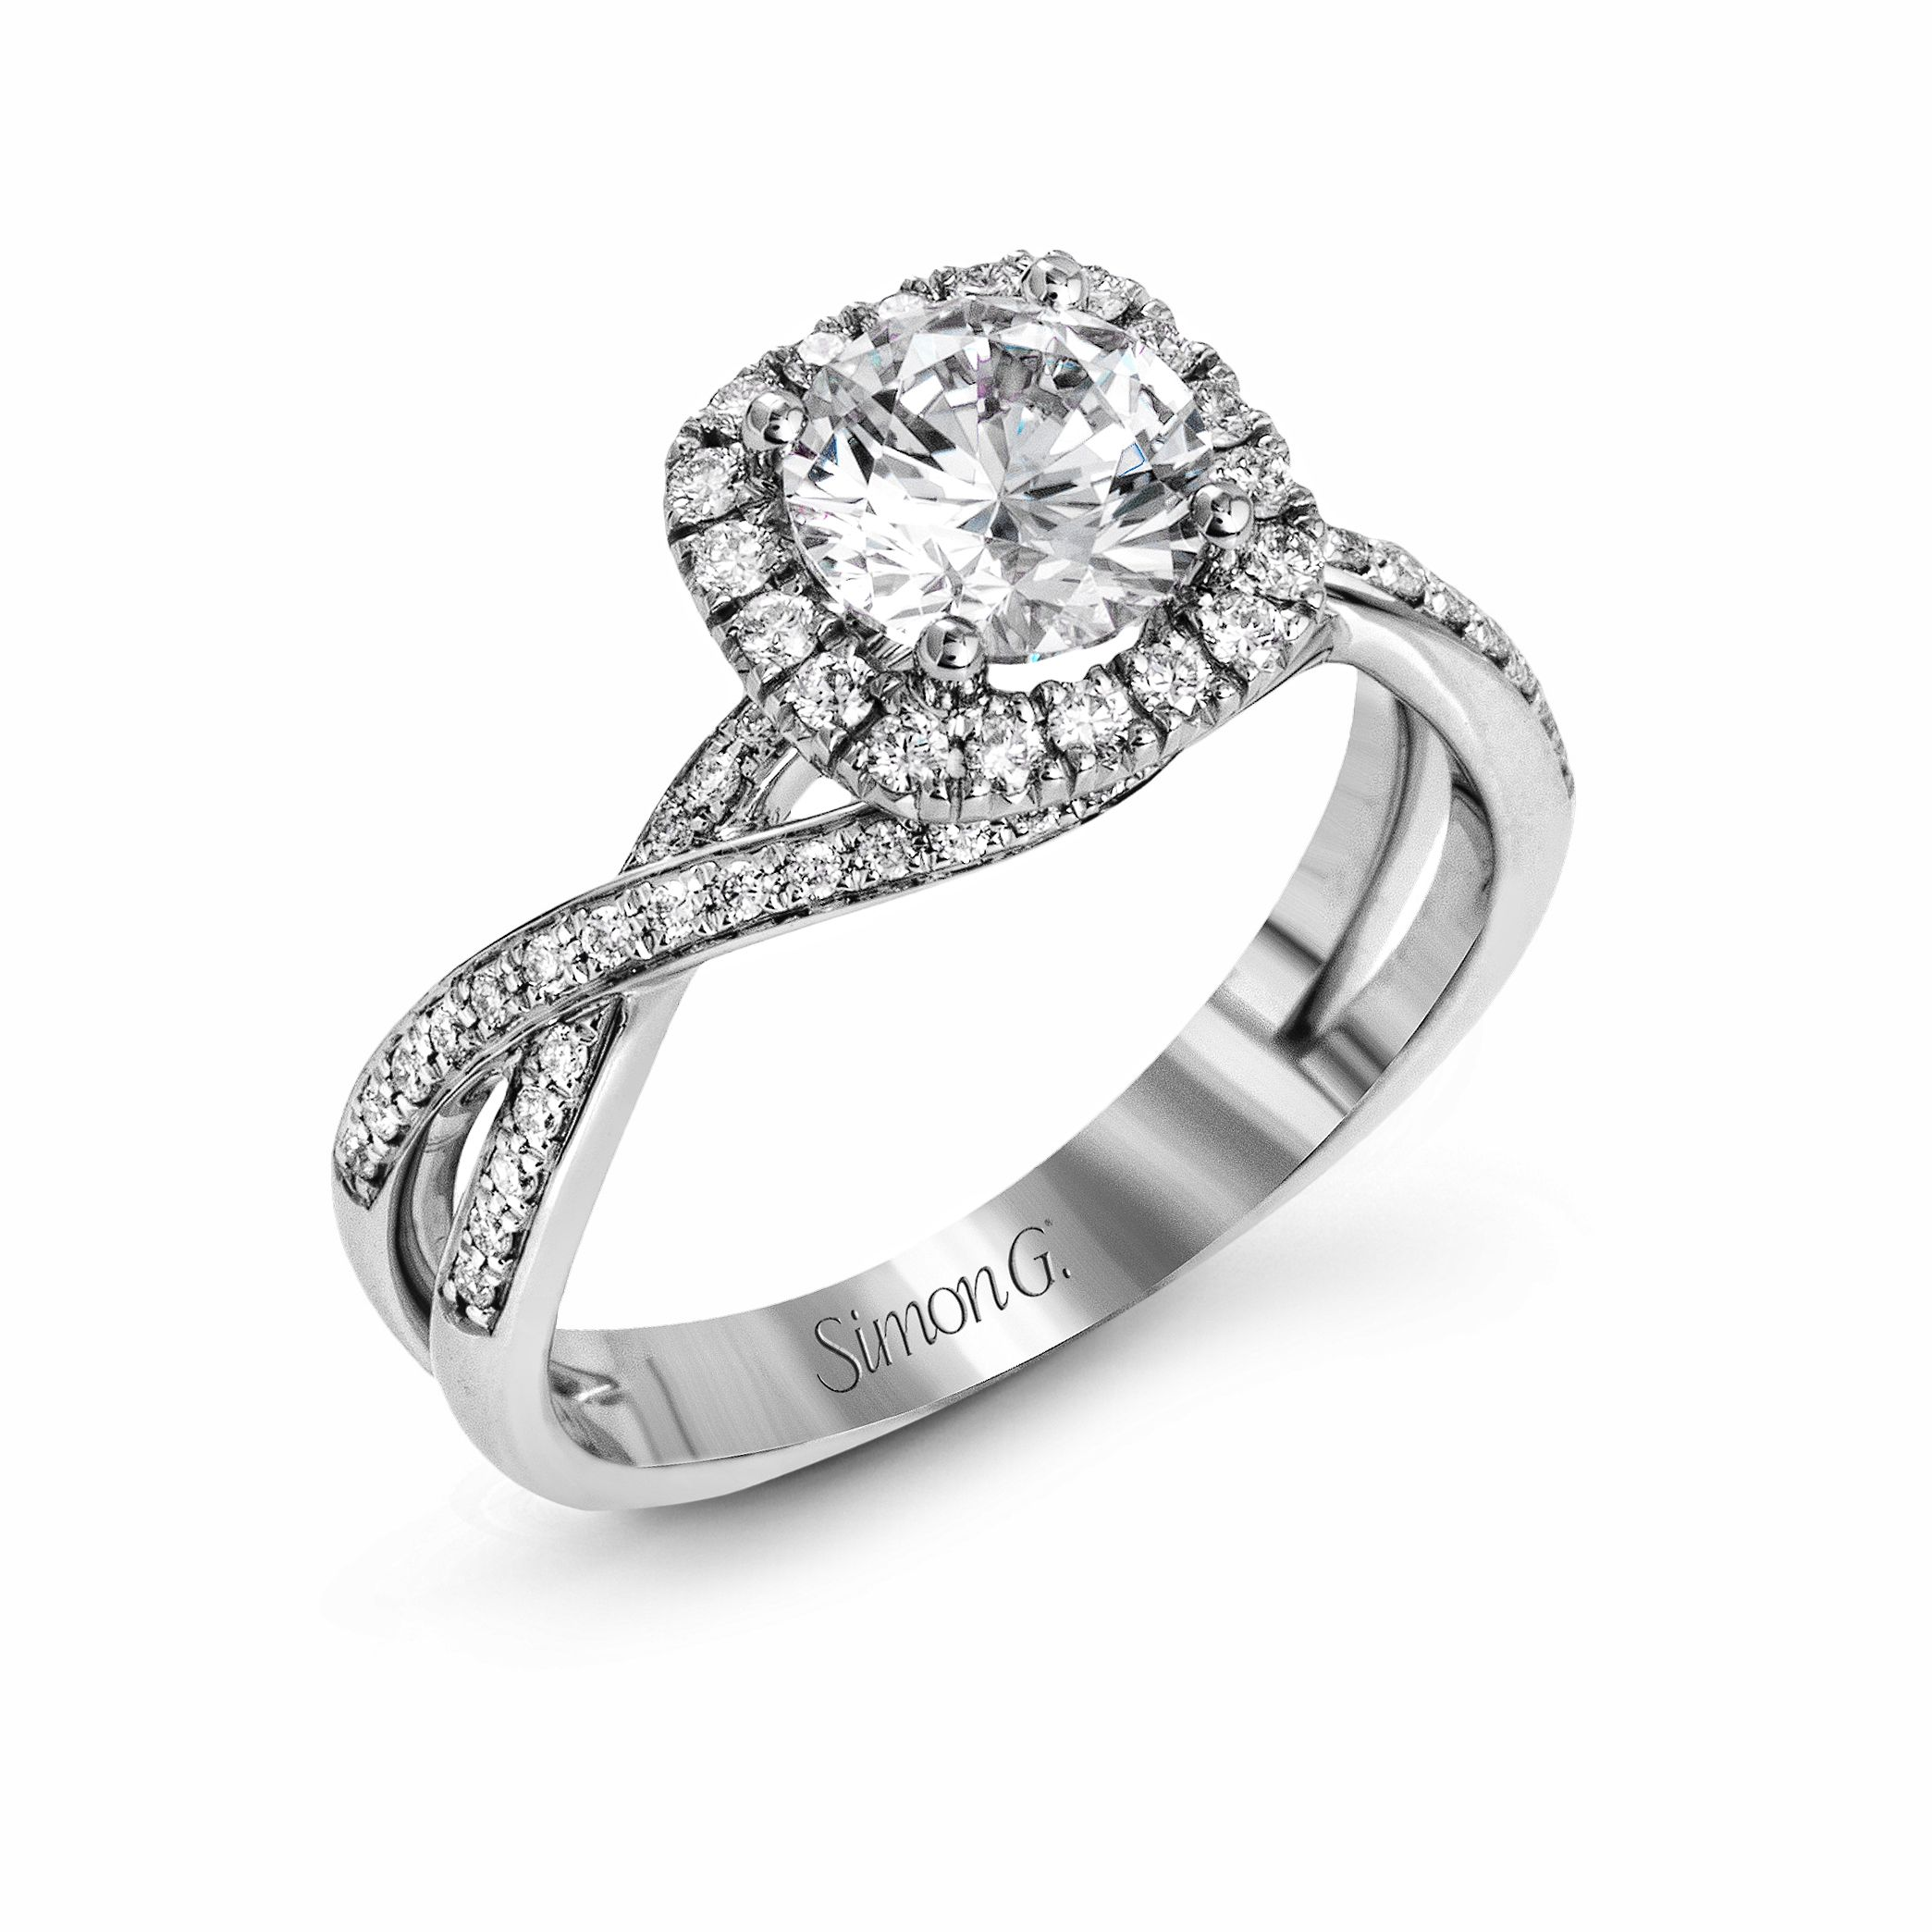 wedding f solitaire diamond zadok passion shop simon engagement rings set sets g